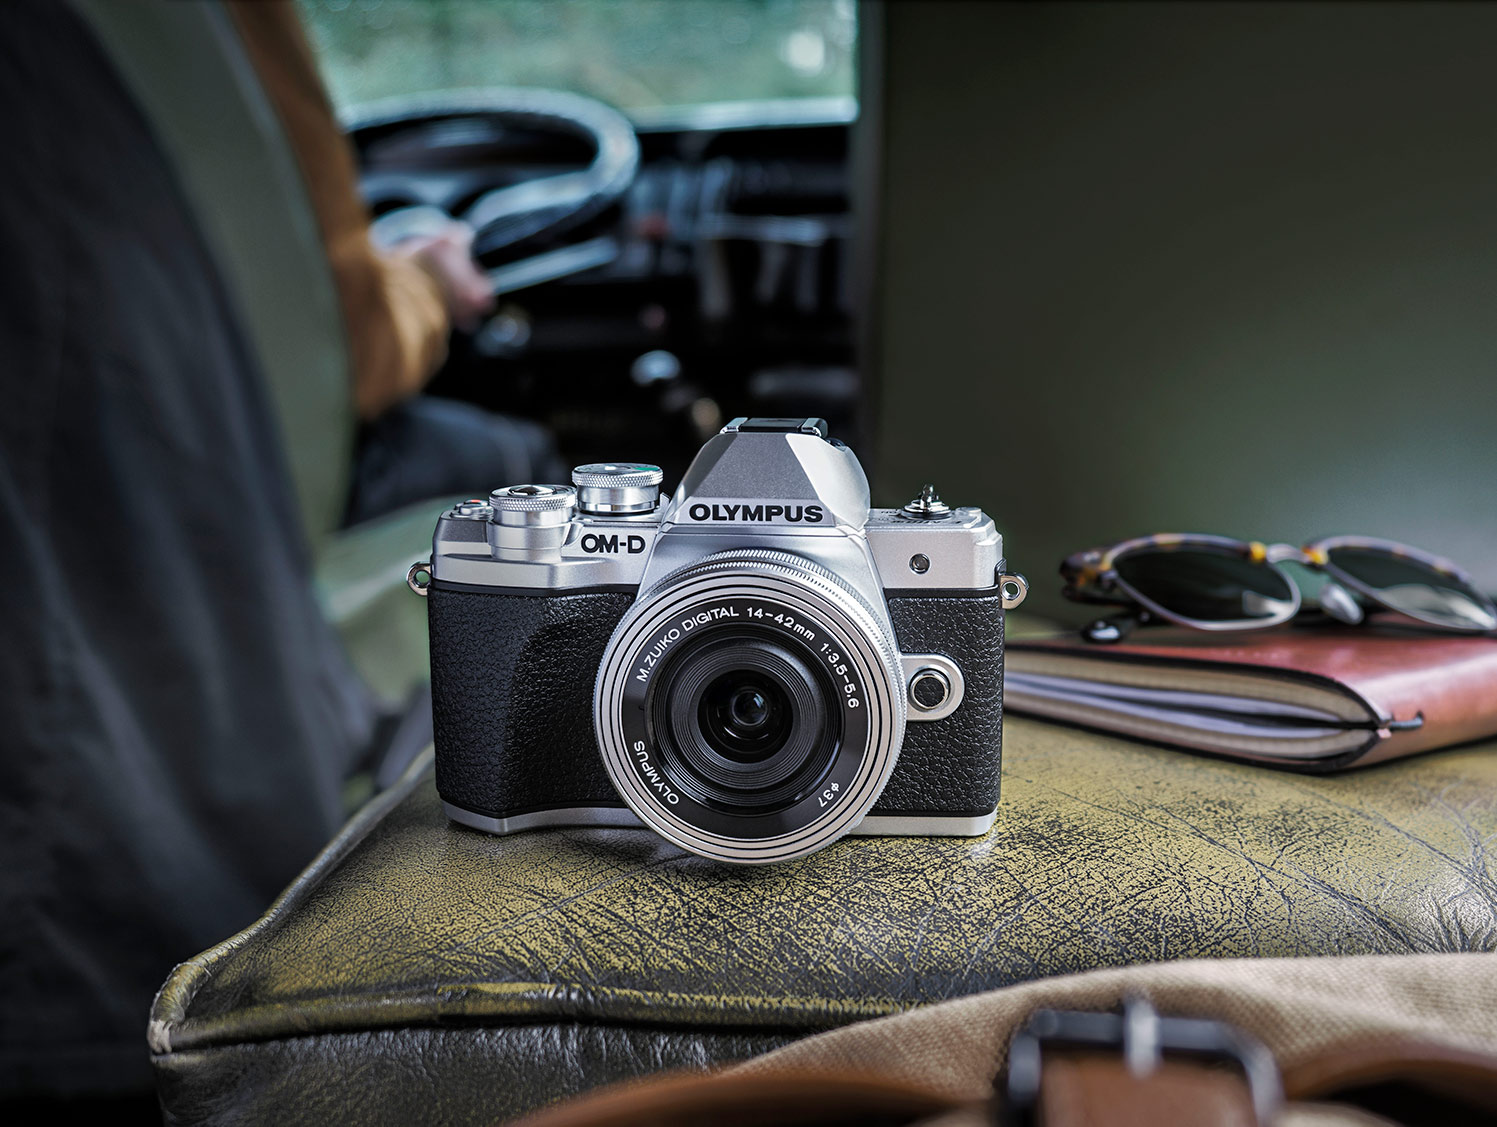 A lifestyle shot of an Olympus OMD camera Olympus sale